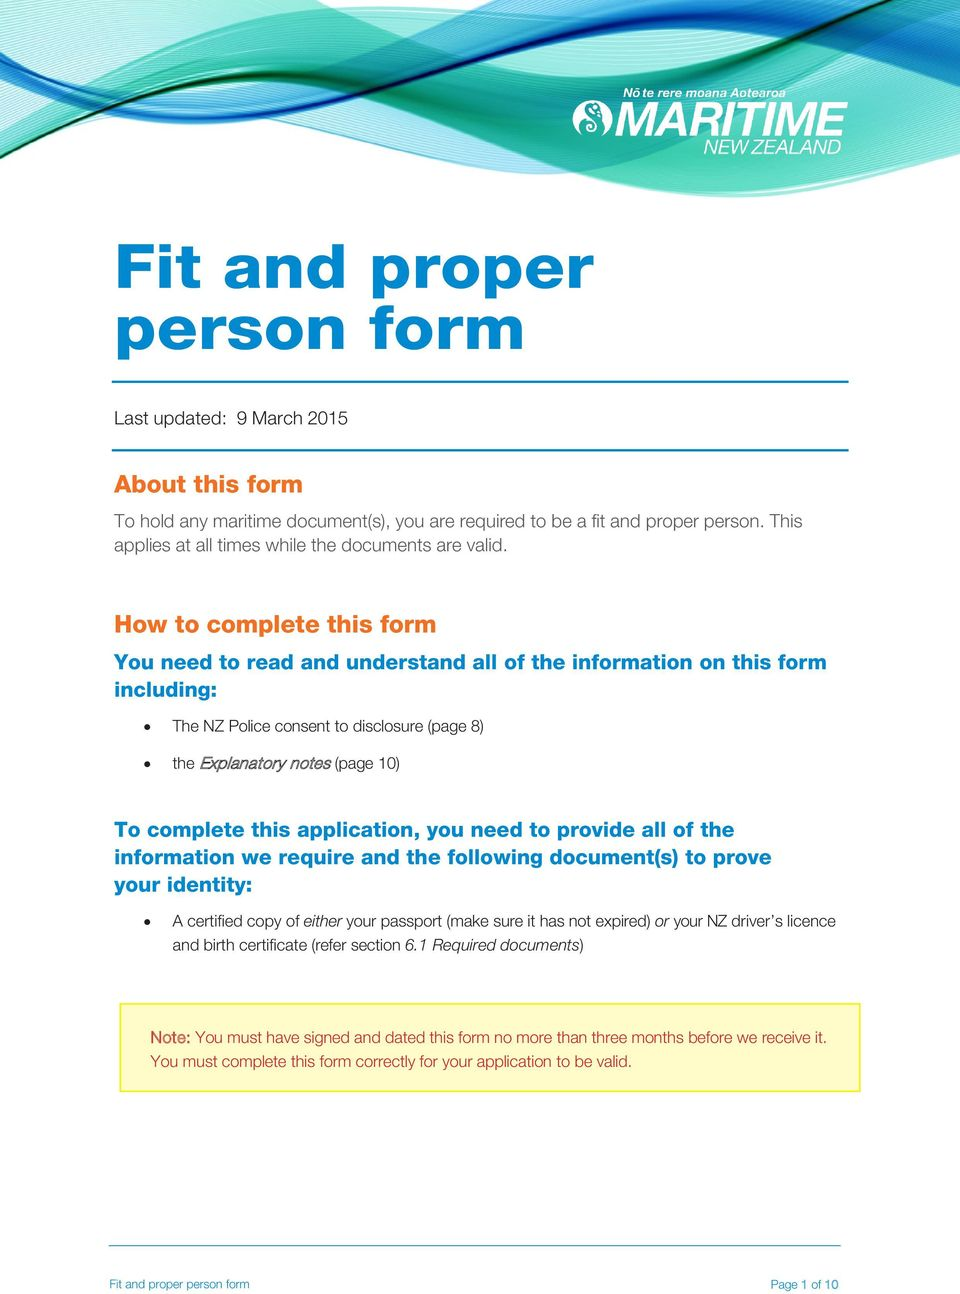 How to complete this form You need to read and understand all of the information on this form including: The NZ Police consent to disclosure (page 8) the Explanatory notes (page 10) To complete this